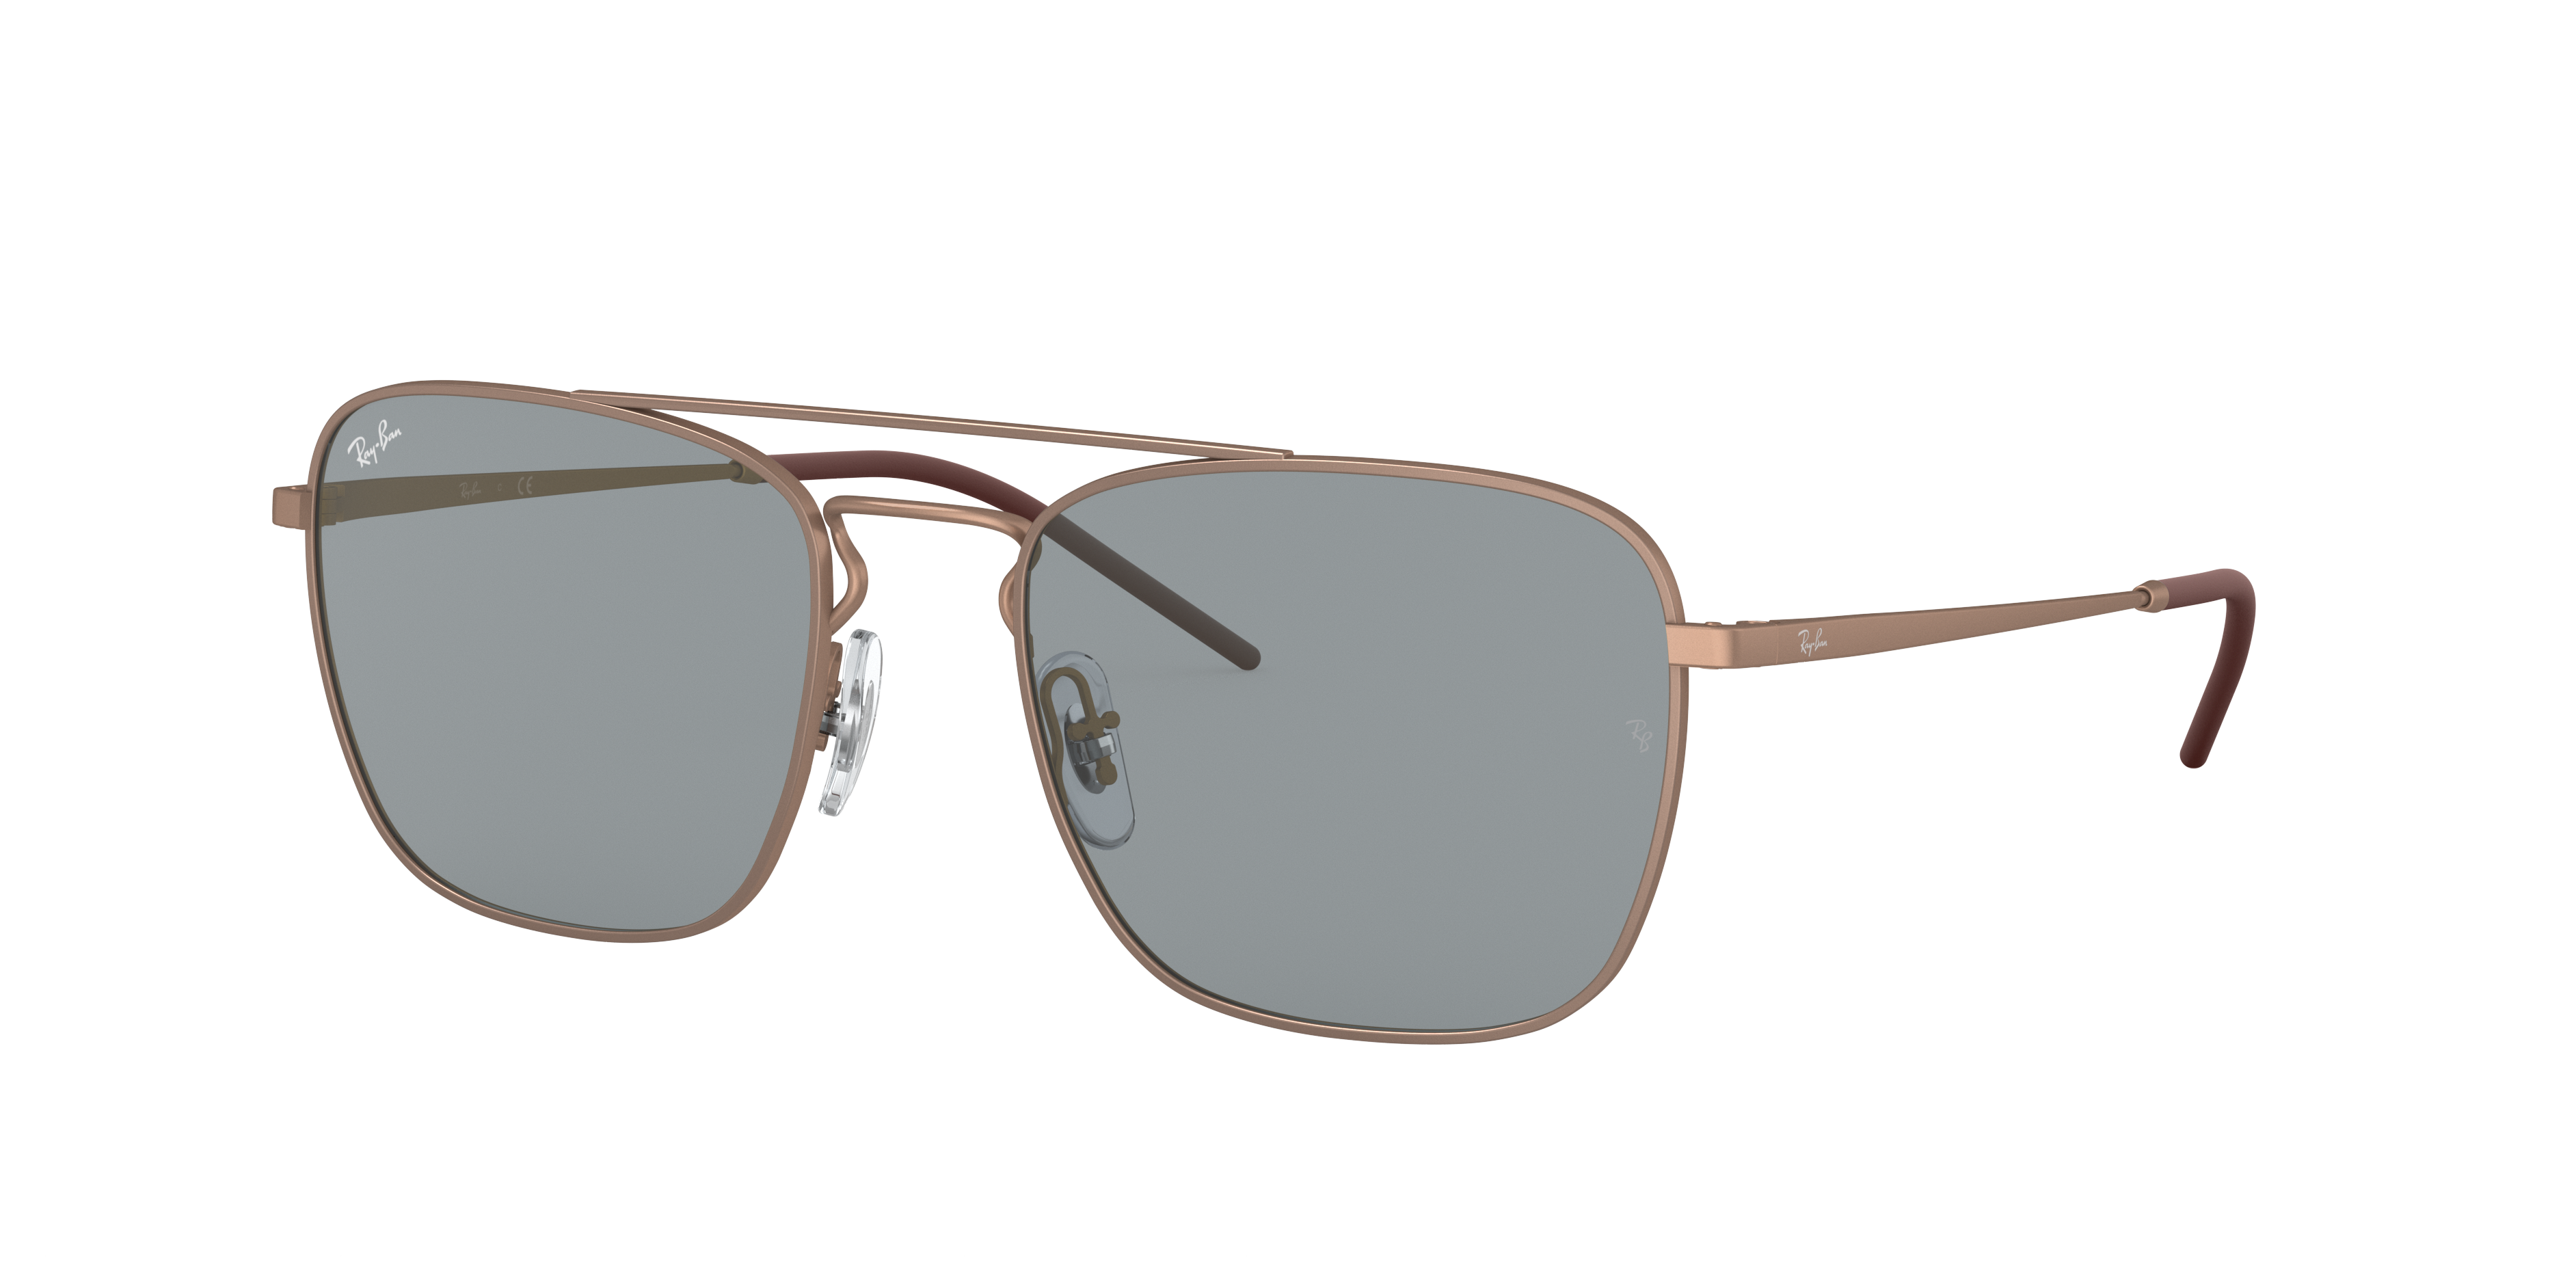 Ray-Ban Rb3588 Bronze-Copper, Grey Lenses - RB3588